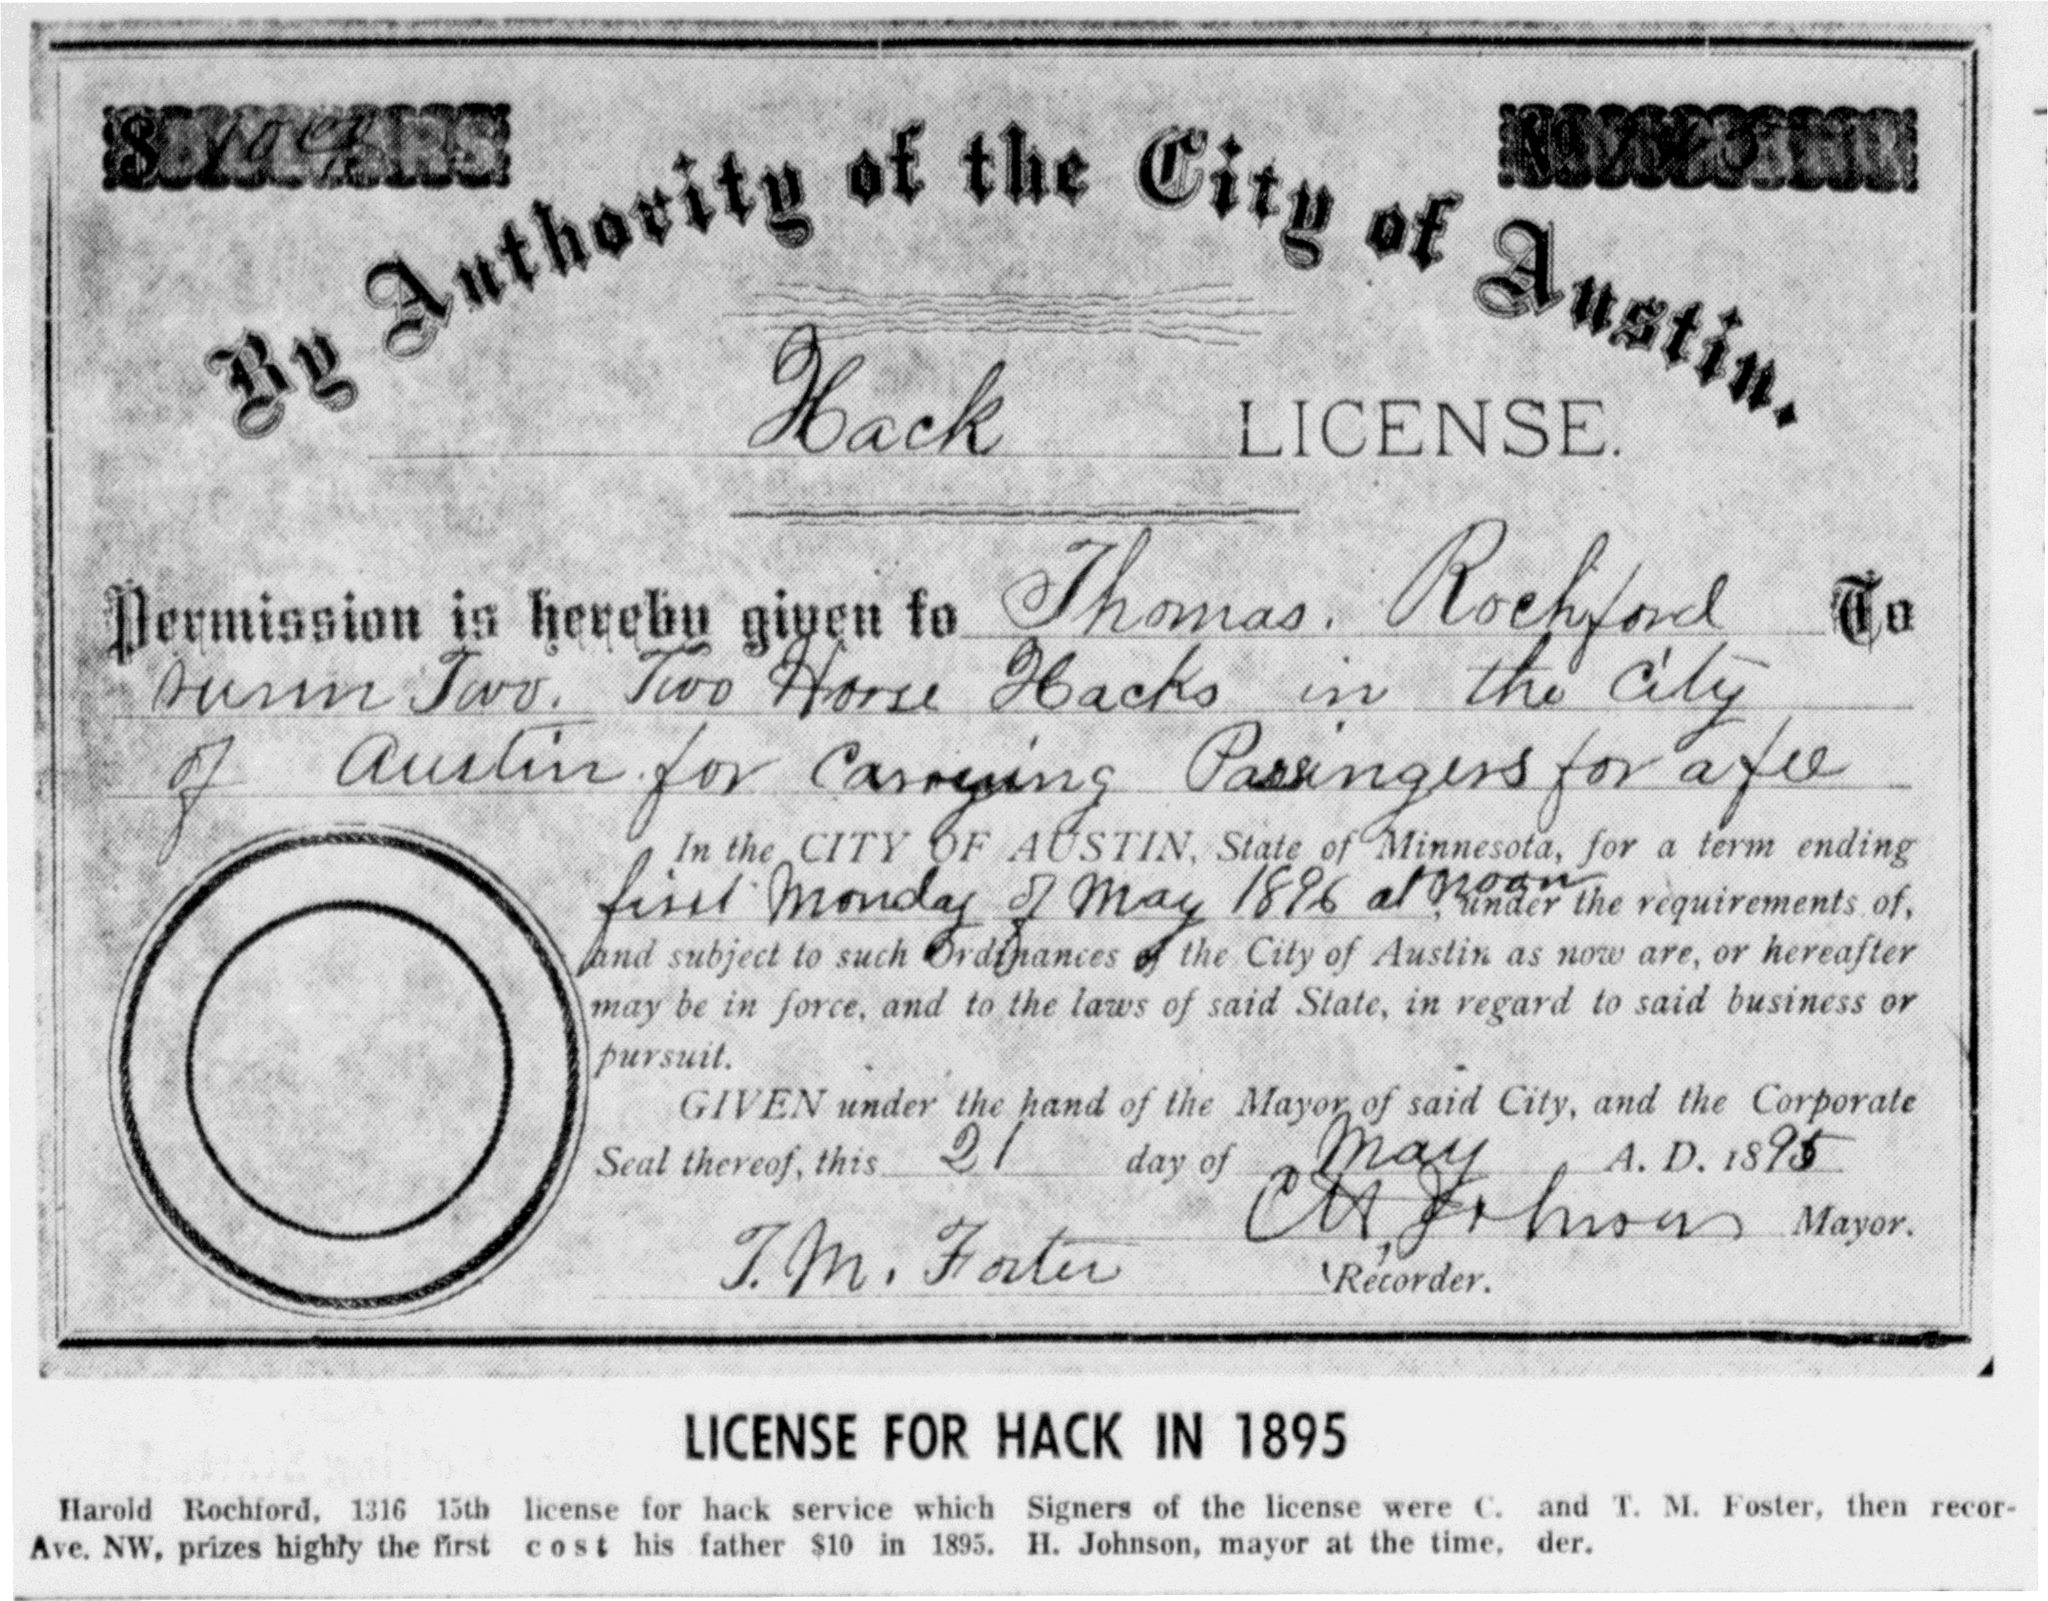 1895 Hack License article - November 9th, 1966